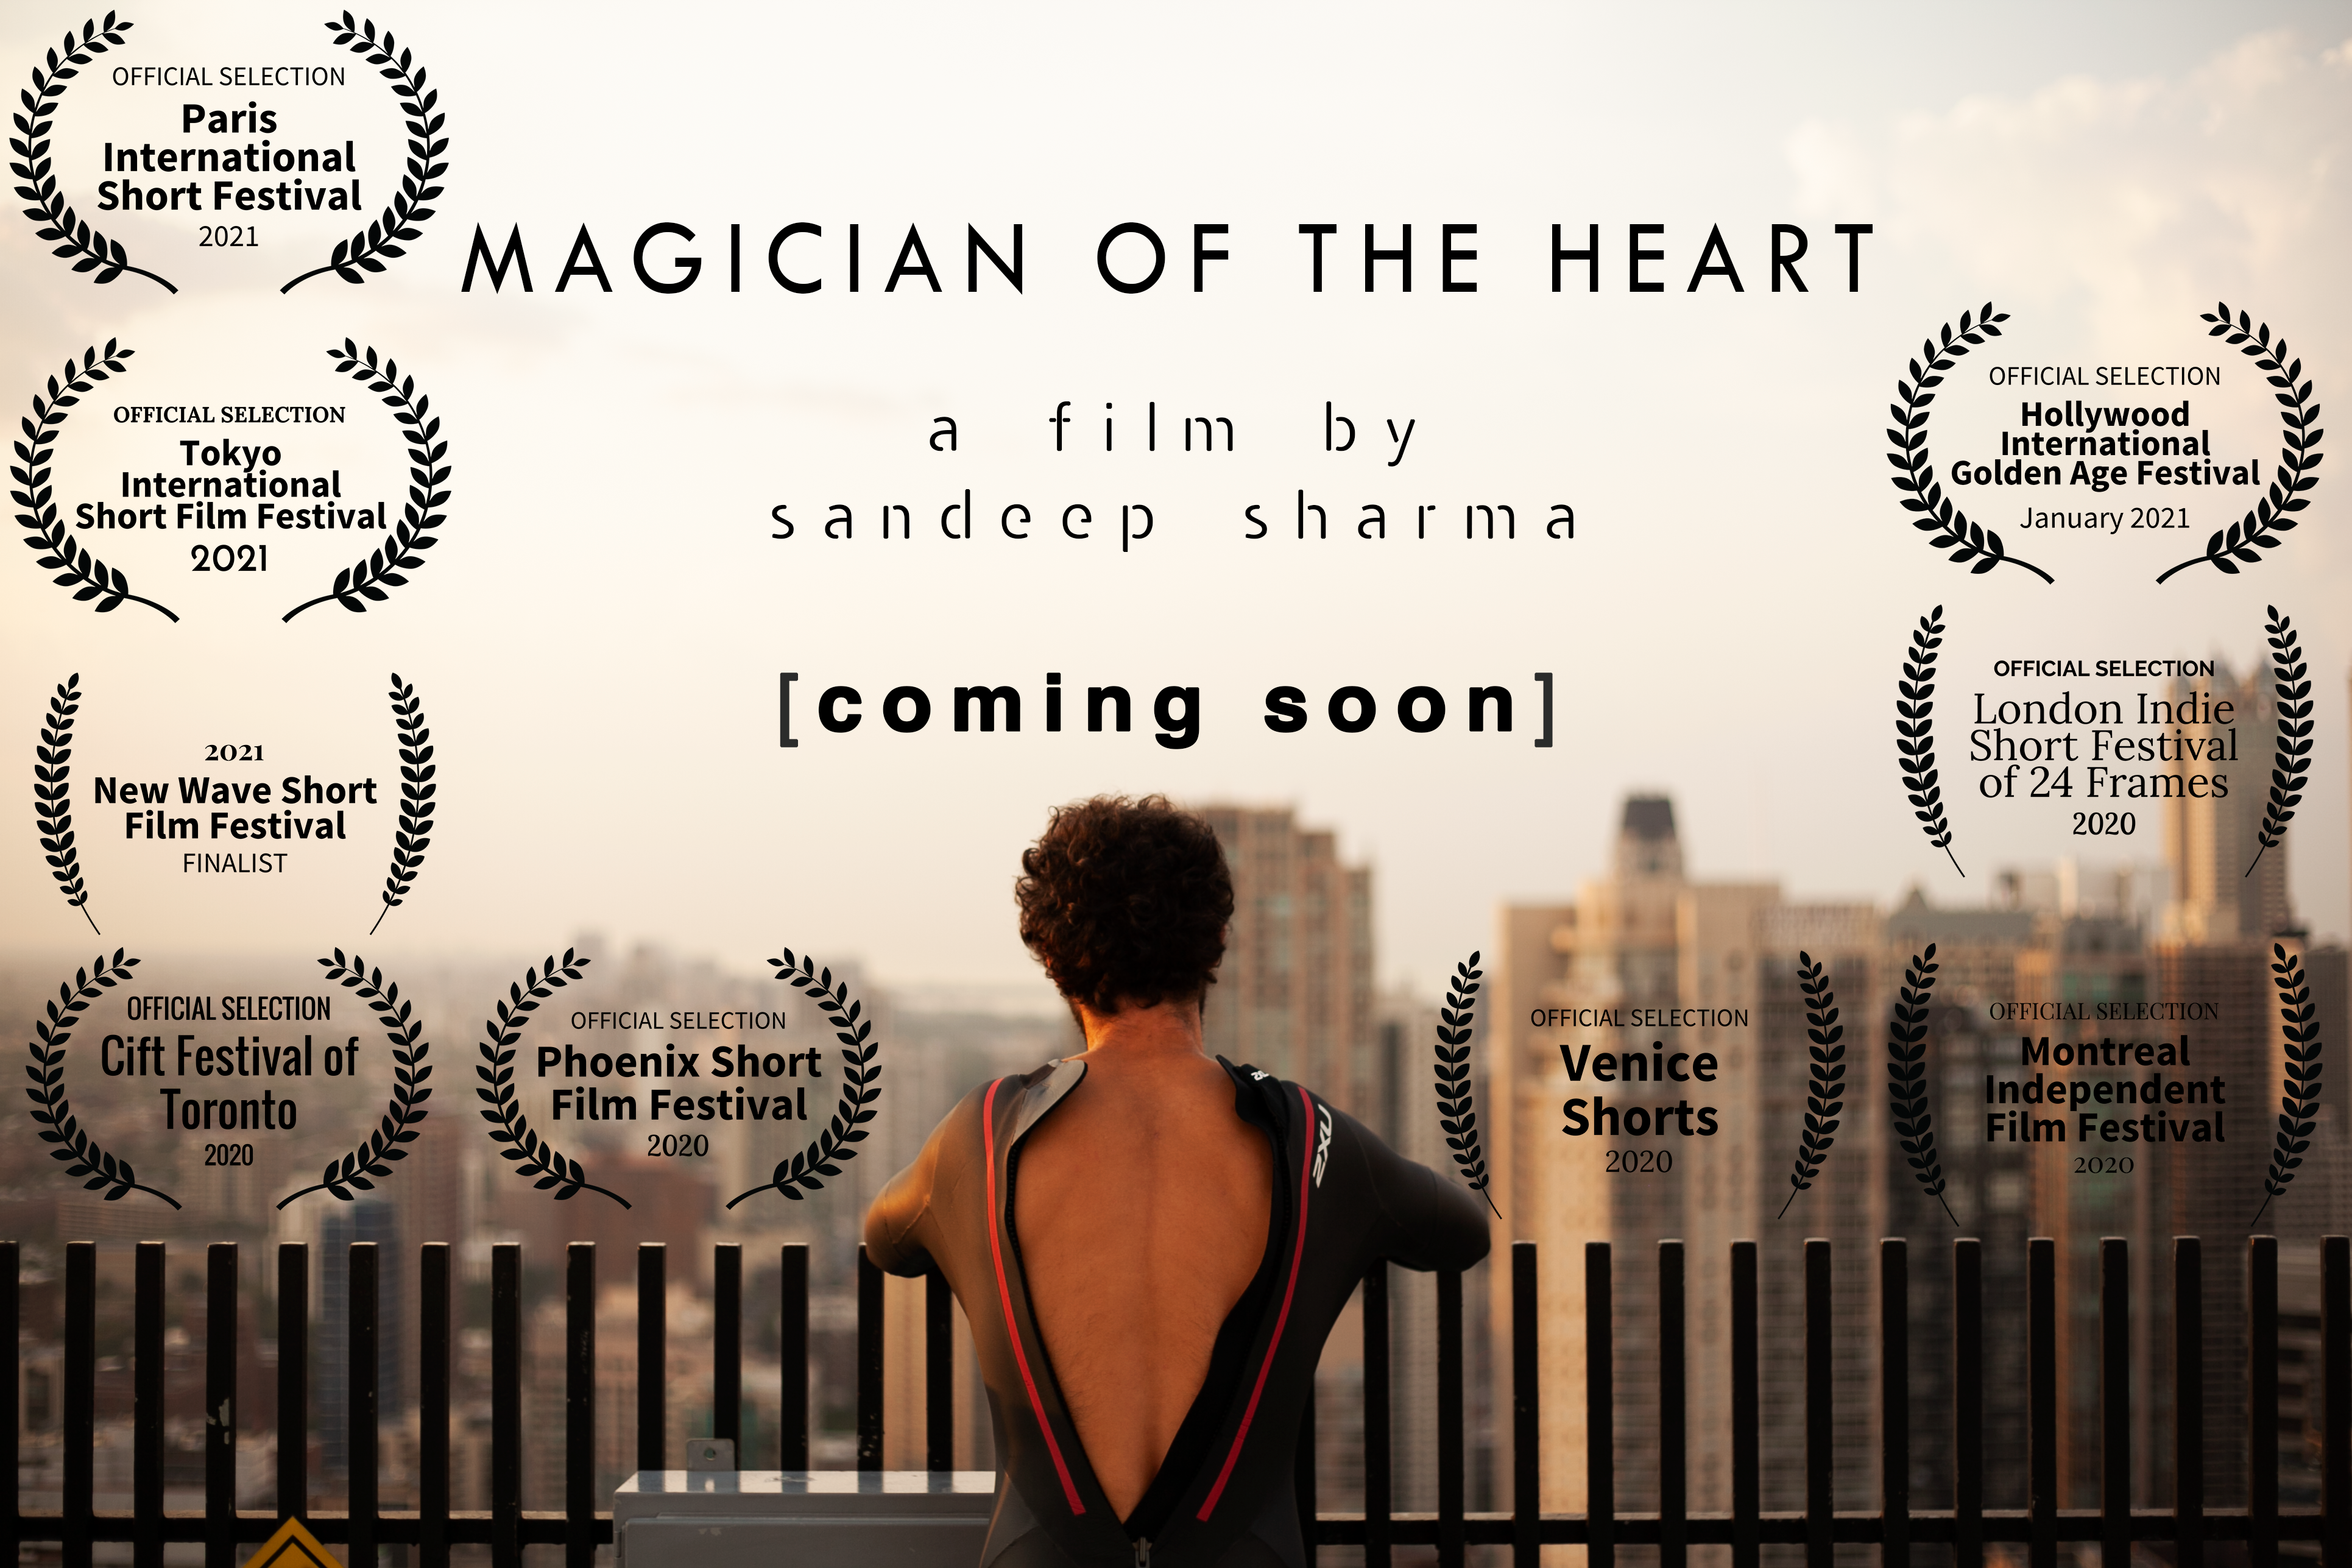 MAGICIAN OF THE HEART (M.O.T.H.)